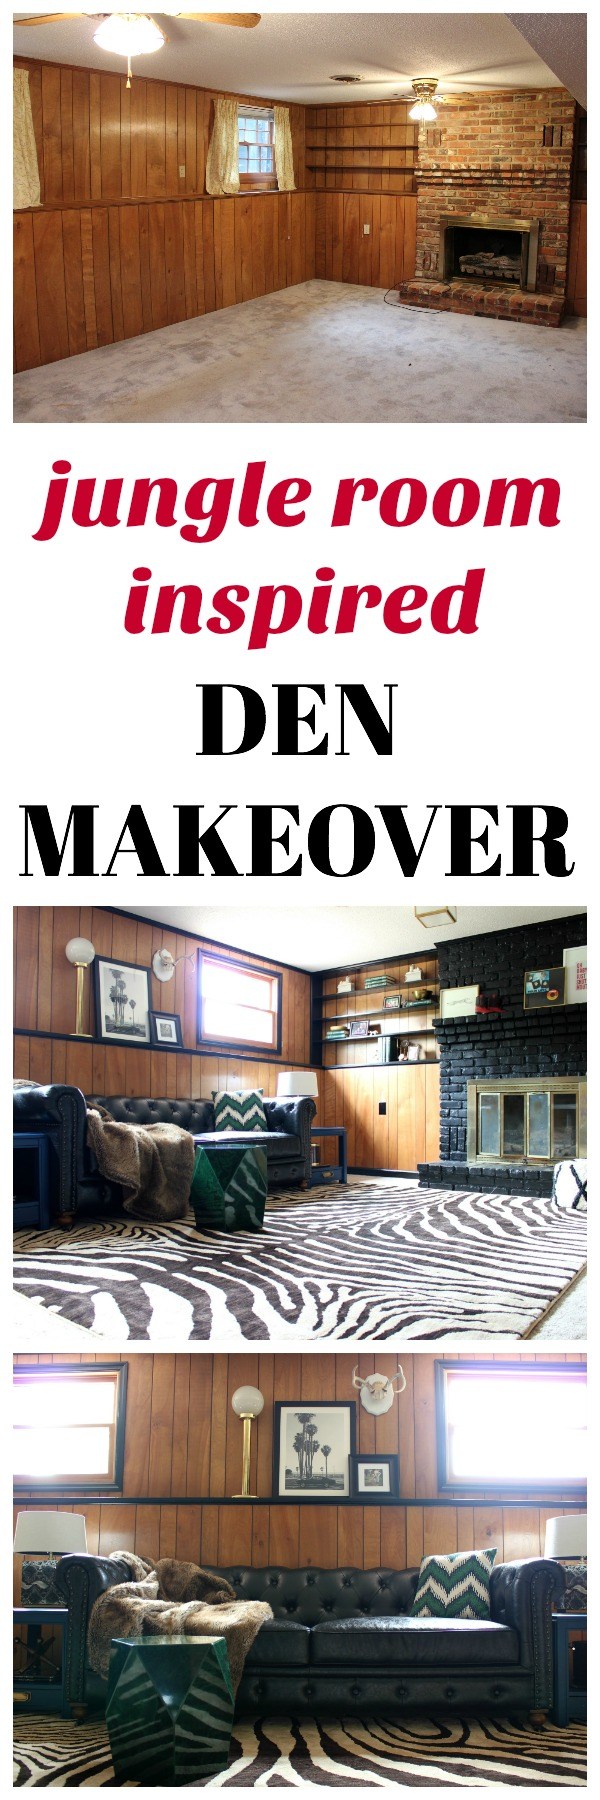 The Jungle Room Den Makeover on